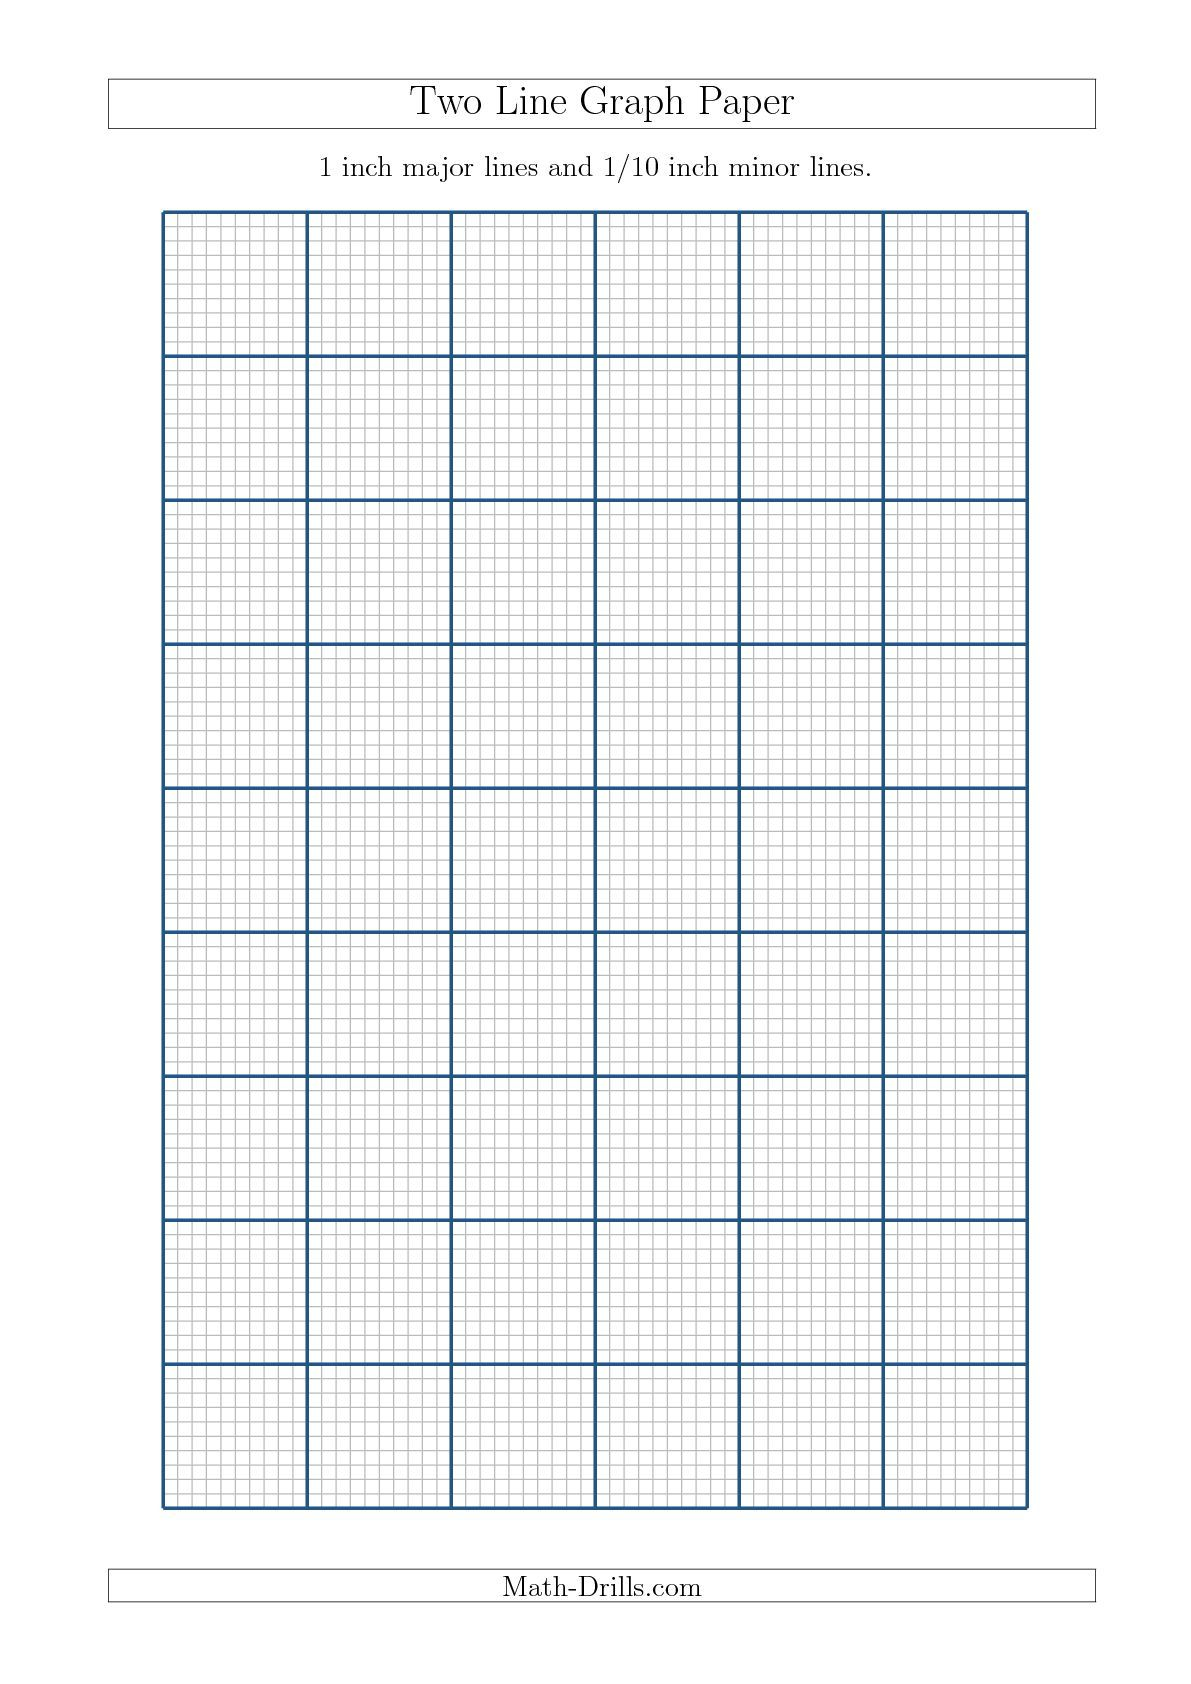 New A4 Sizes Added 09 18 Two Line Graph Paper With 1 Inch Major Lines And